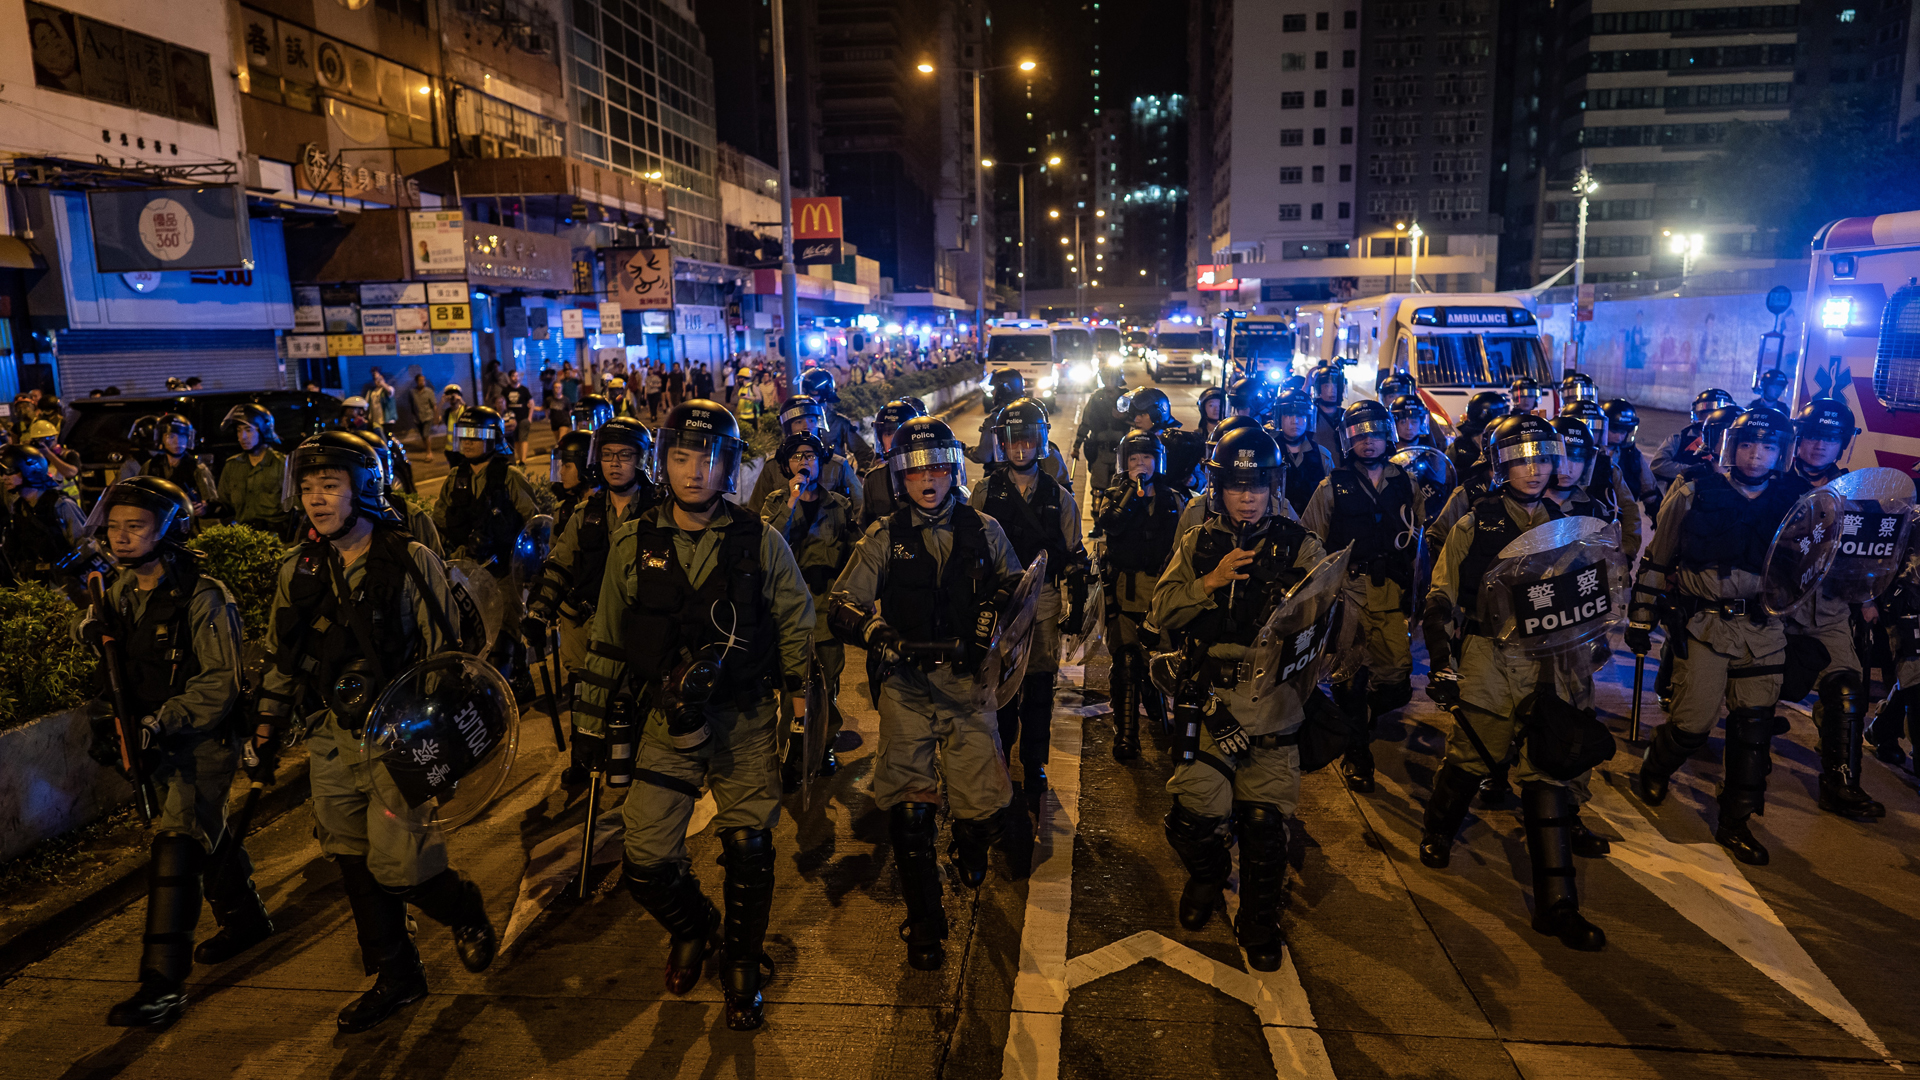 Riot police charge outside of the Mongkok Police Station during a standoff with protesters after an anti-government rally in on September 1, 2019 in Hong Kong, China. (Credit: Anthony Kwan/Getty Images)